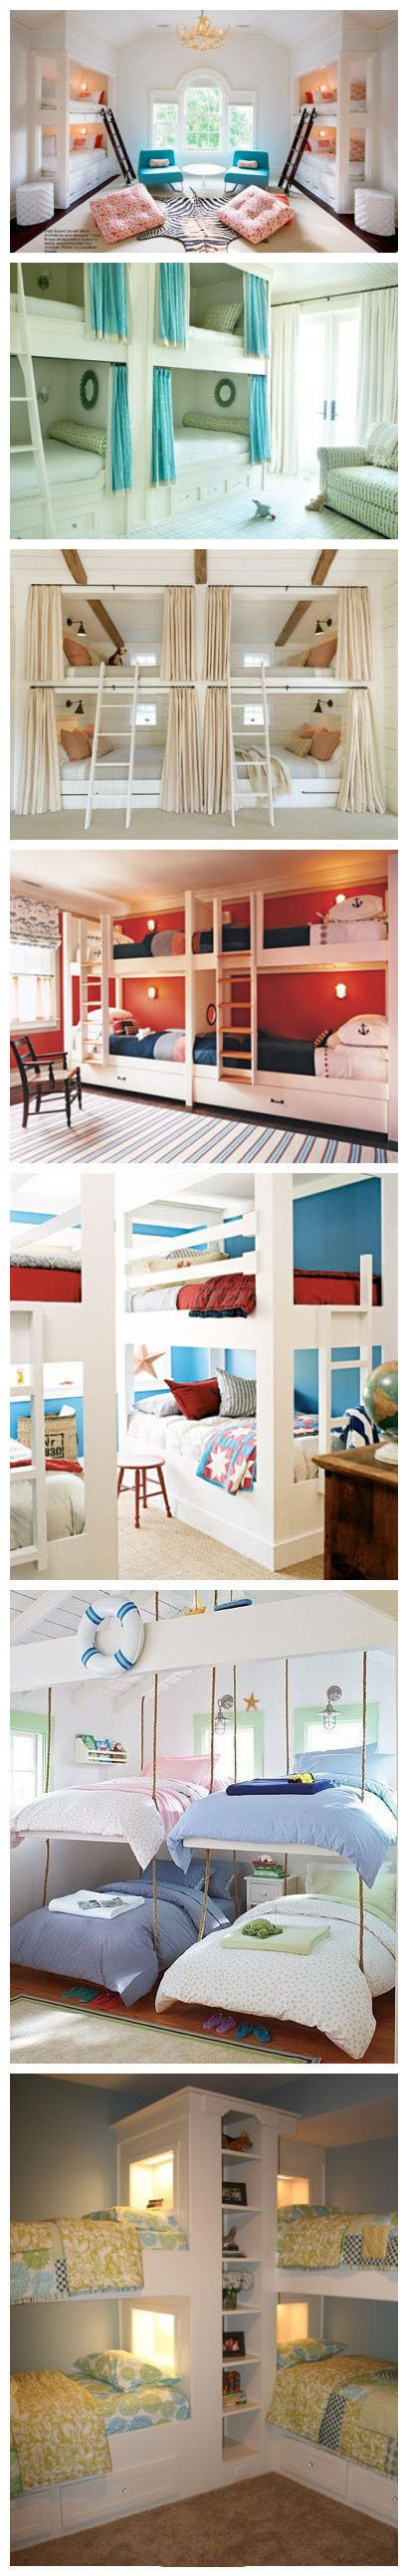 bunk beds: maximizing guest areas